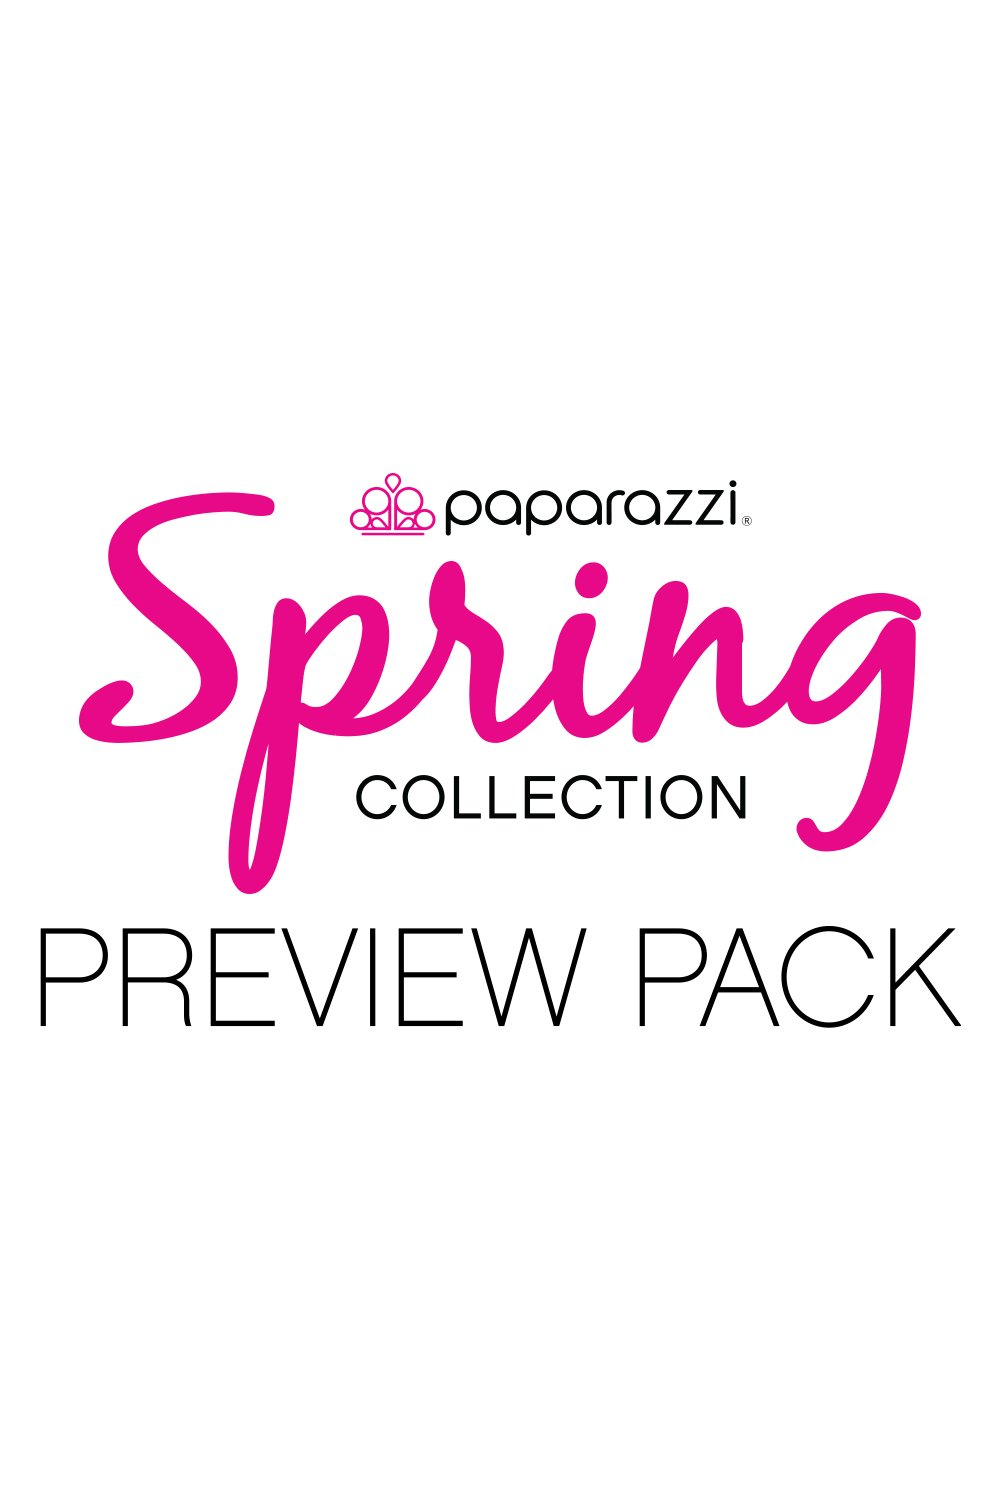 Paparazzi Empower Me Pink 2020 - Spring Preview Pack Lookbook Catalog - Coming LIVE! - Gem Box Accessories